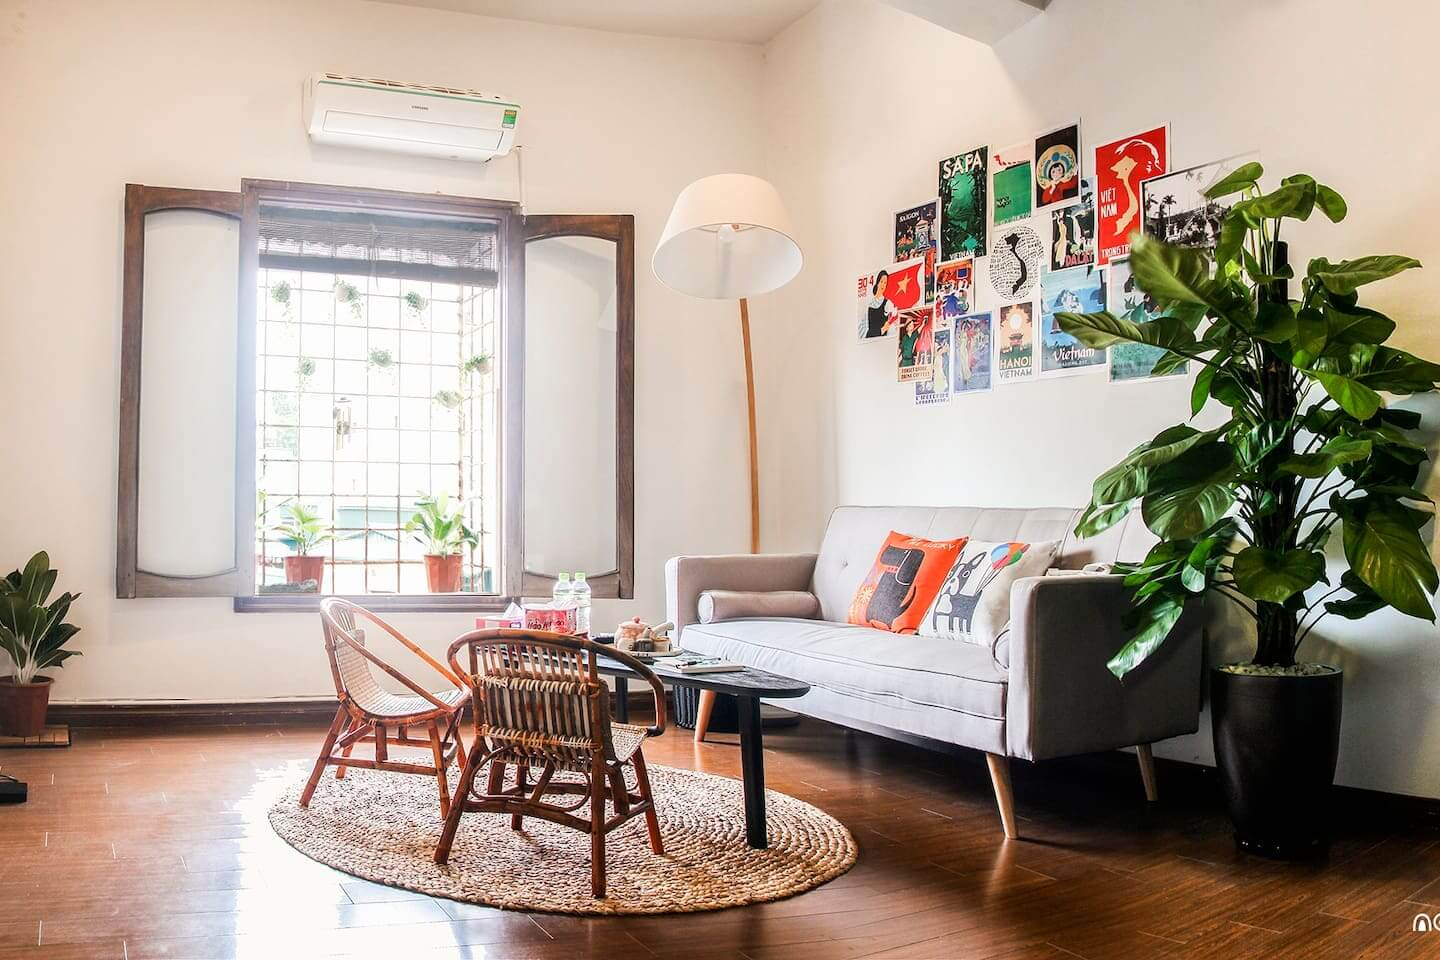 Full of Lights Hanoi Airbnb. Image courtesy of Airbnb.